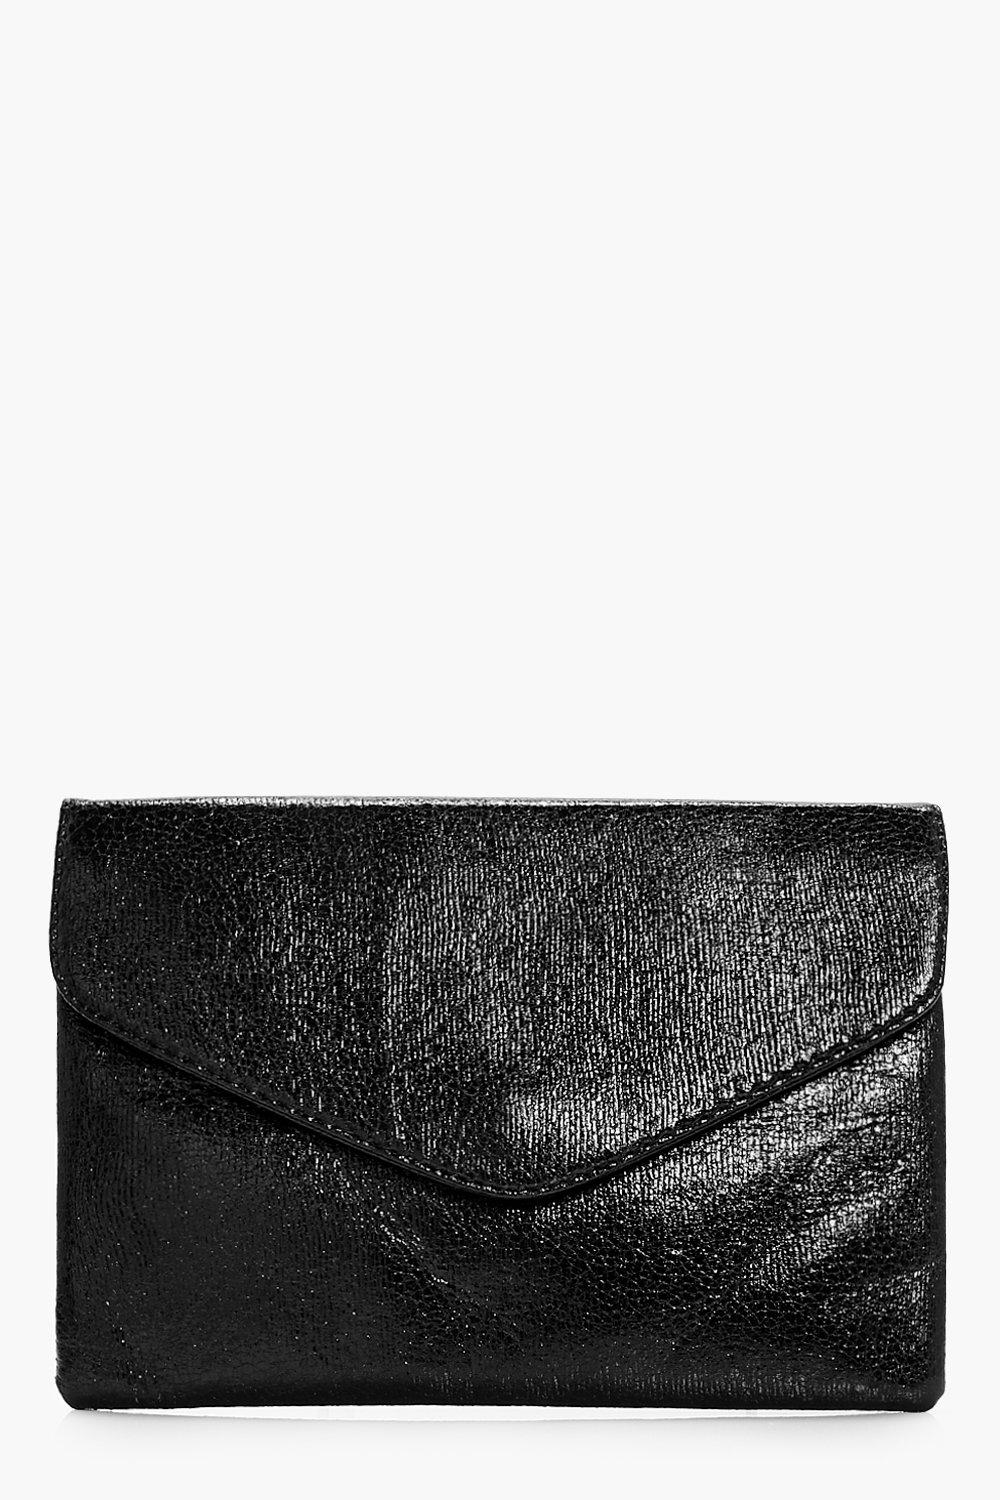 Cracked Metallic Clutch - black - Emma Cracked Met